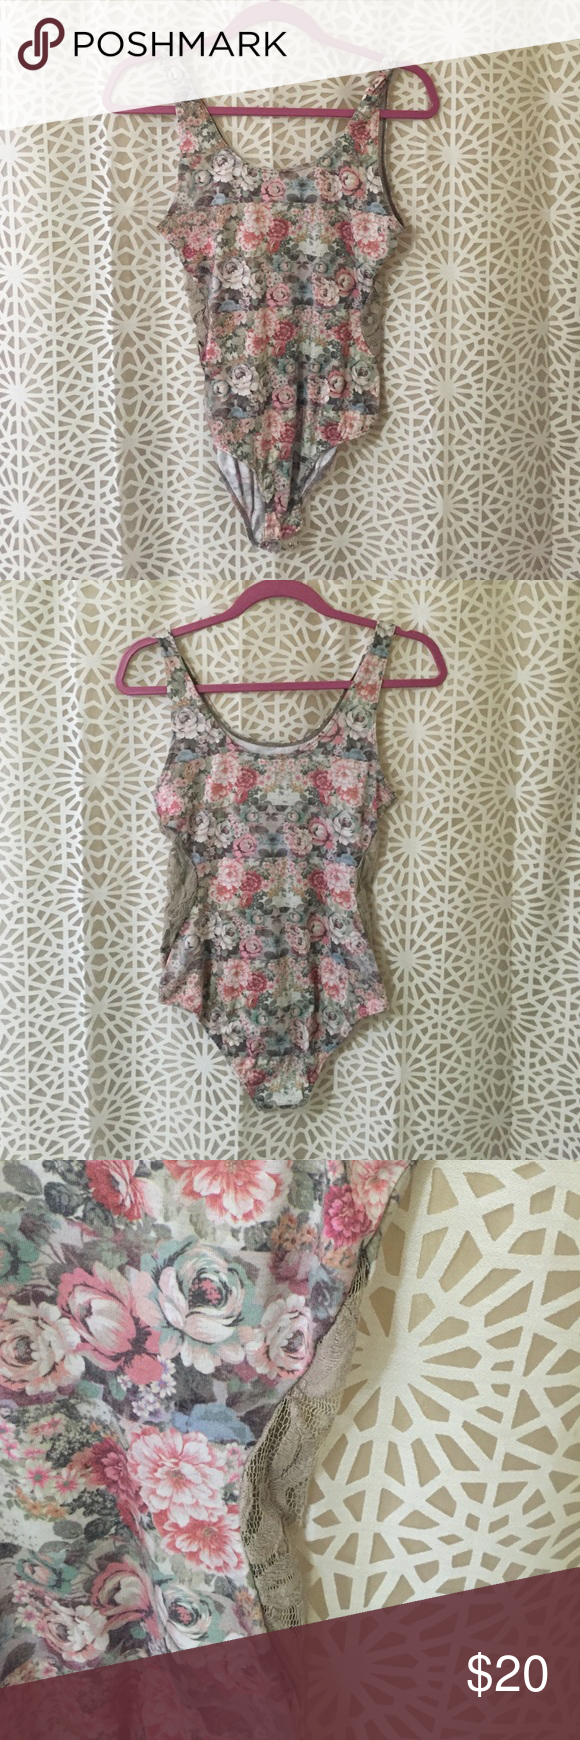 Vintage-rose print leotard with lace cutouts BDG brand from Urban Outfitters. Scoop Neck onesie leotard with scoop neck and slimming lace cutouts on the sides. Bikini cut coverage in the back and snap closure at the crotch. AS IS: one of 3 snaps is broken BDG Other